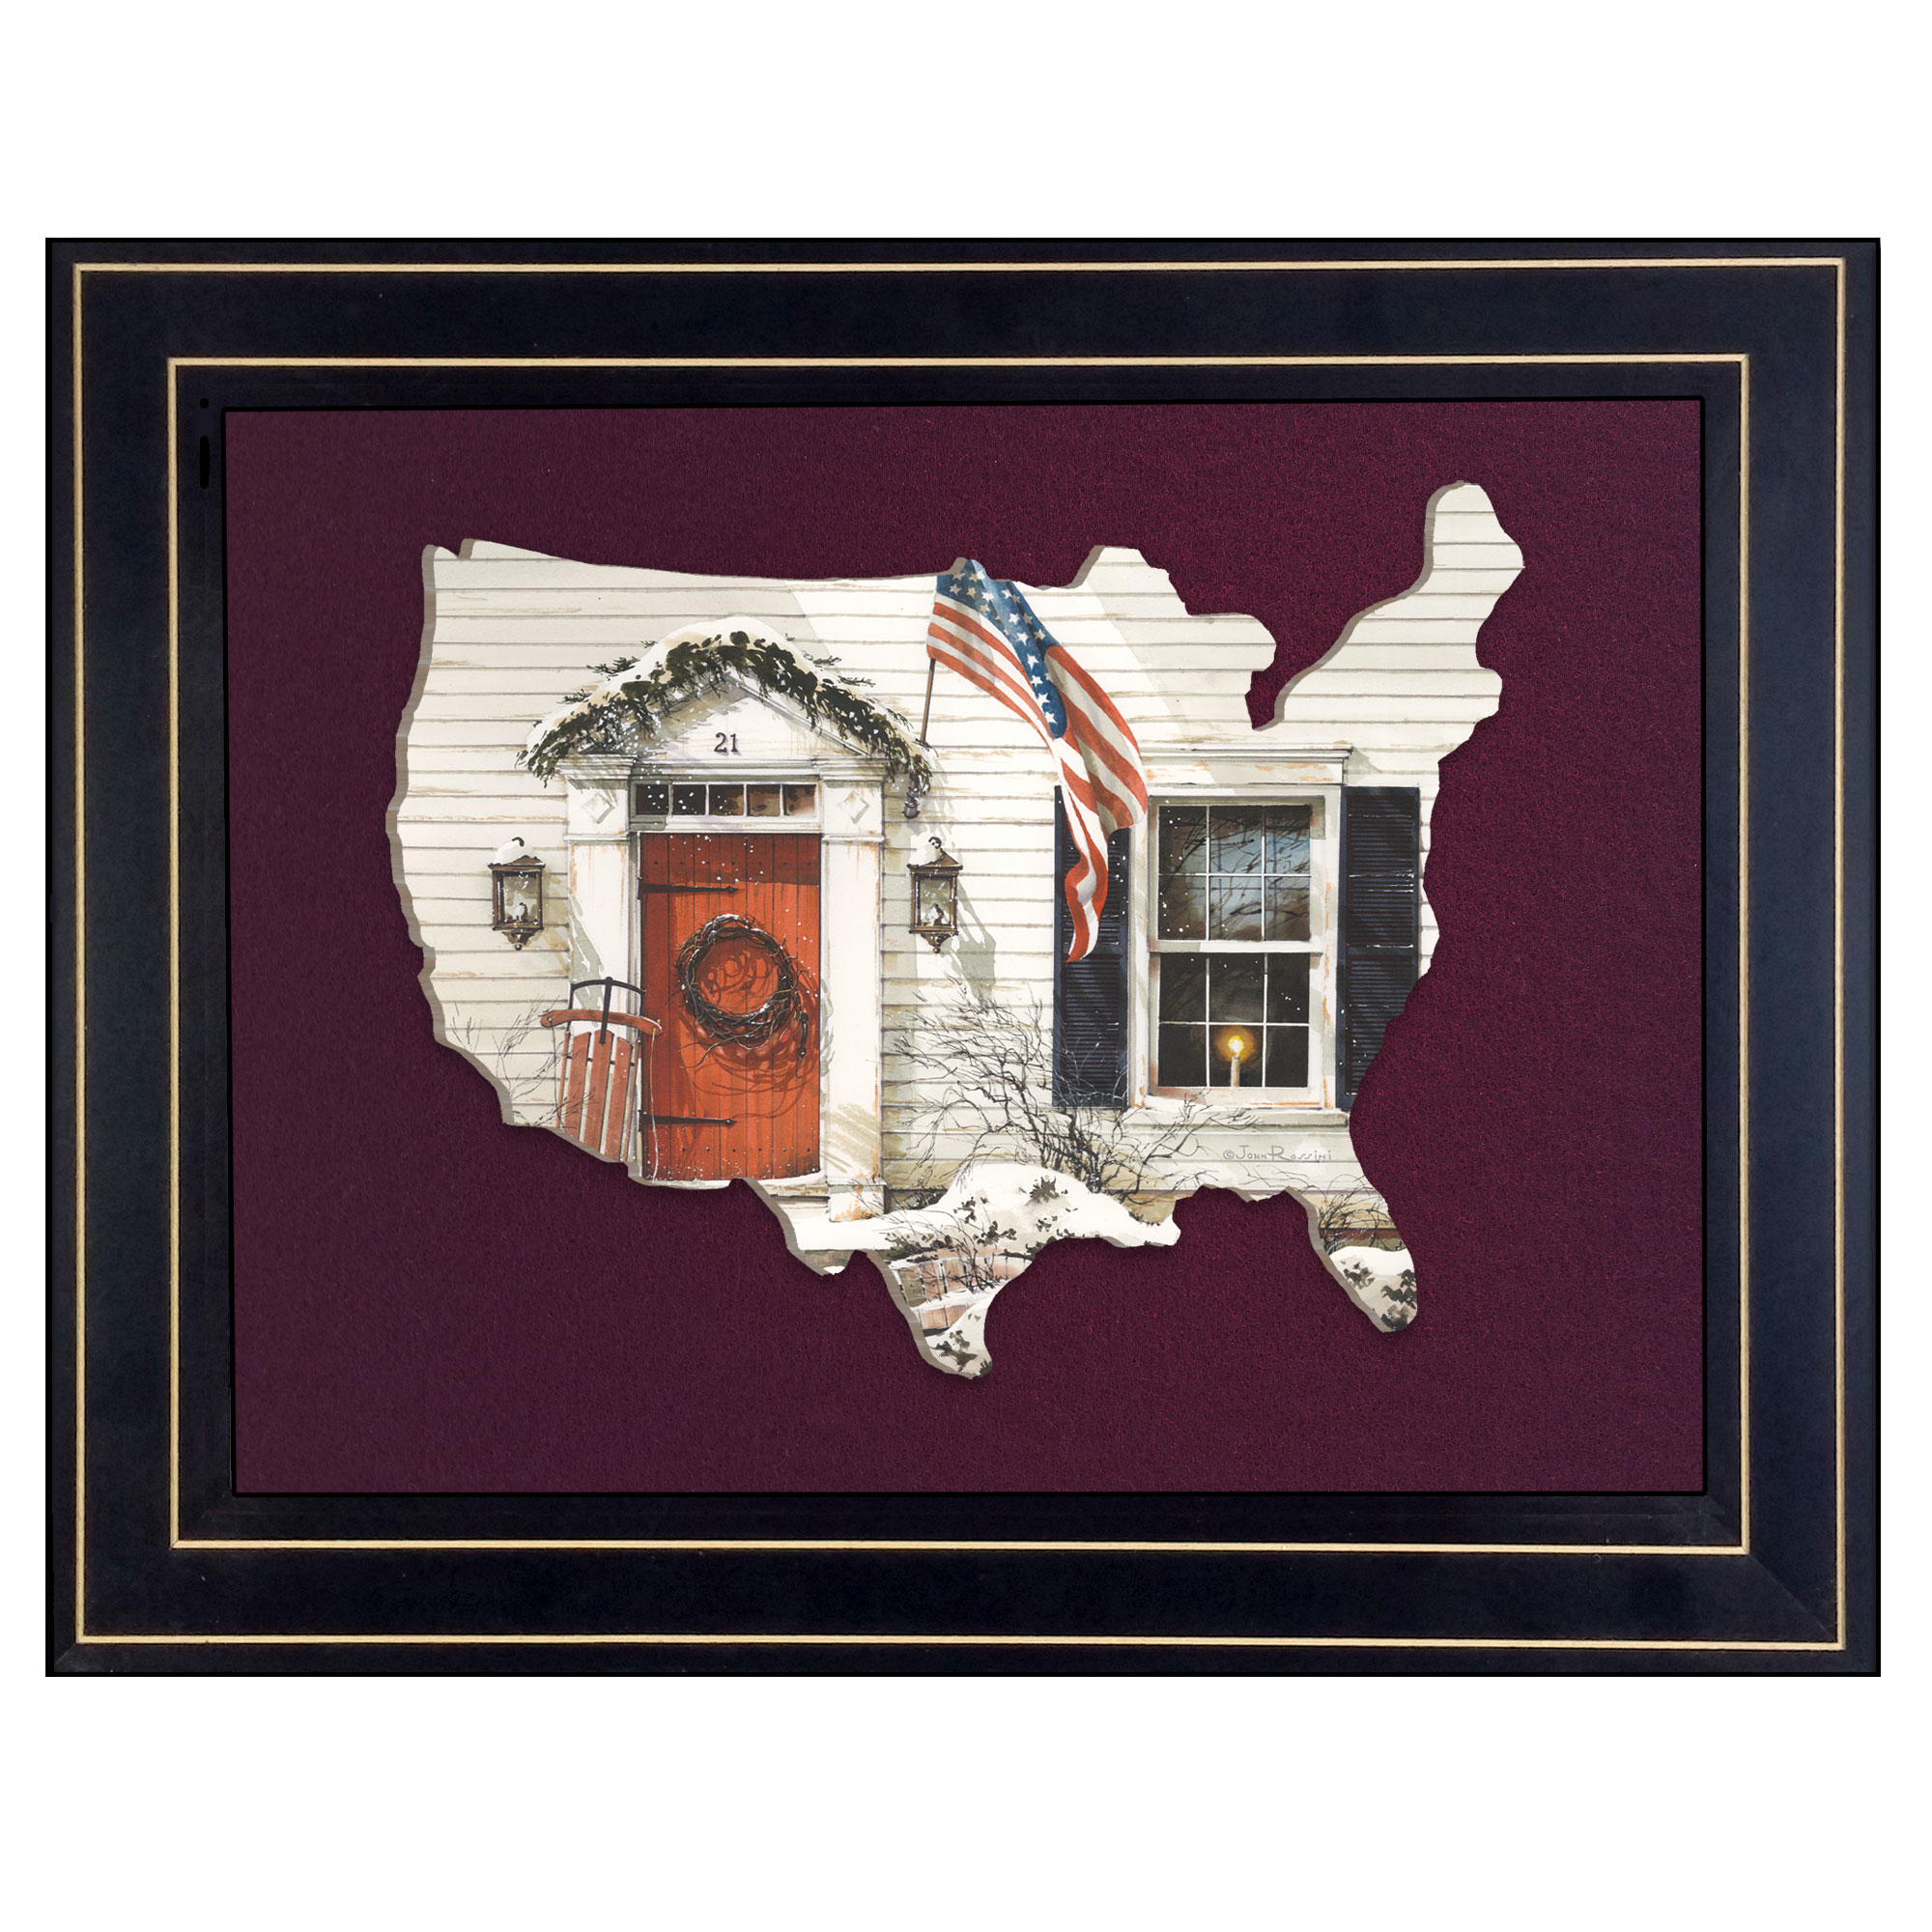 Jr177Usa-B-704G 21 Main Street, by artisan John Rossini, 3D framed art printed directly on wood in the shape of the United States, then mounted on a felt background, in an attractive 19 x 15 black frame. Framed cutout of the outside of a farm house in the winter; sled beside the door, garland over the door way, candle in the window, wreath on the door, and the American flag flying high. Arrives ready to hang. Made in the USA by skilled American workers. * Textured Artwork with a 'rolled on' acid-free acrylic coating to create a canvas painting effect. * UV Protectant Coating protects artwork from fading. No glass is necessary. * Moulding adds natural beauty to the framed art. Frame is keyholed for the easy hanging. * This Fine Home Decor piece made in the USA by Woman Owned Business (Wbe) is a perfect gift for a friend or relative. *